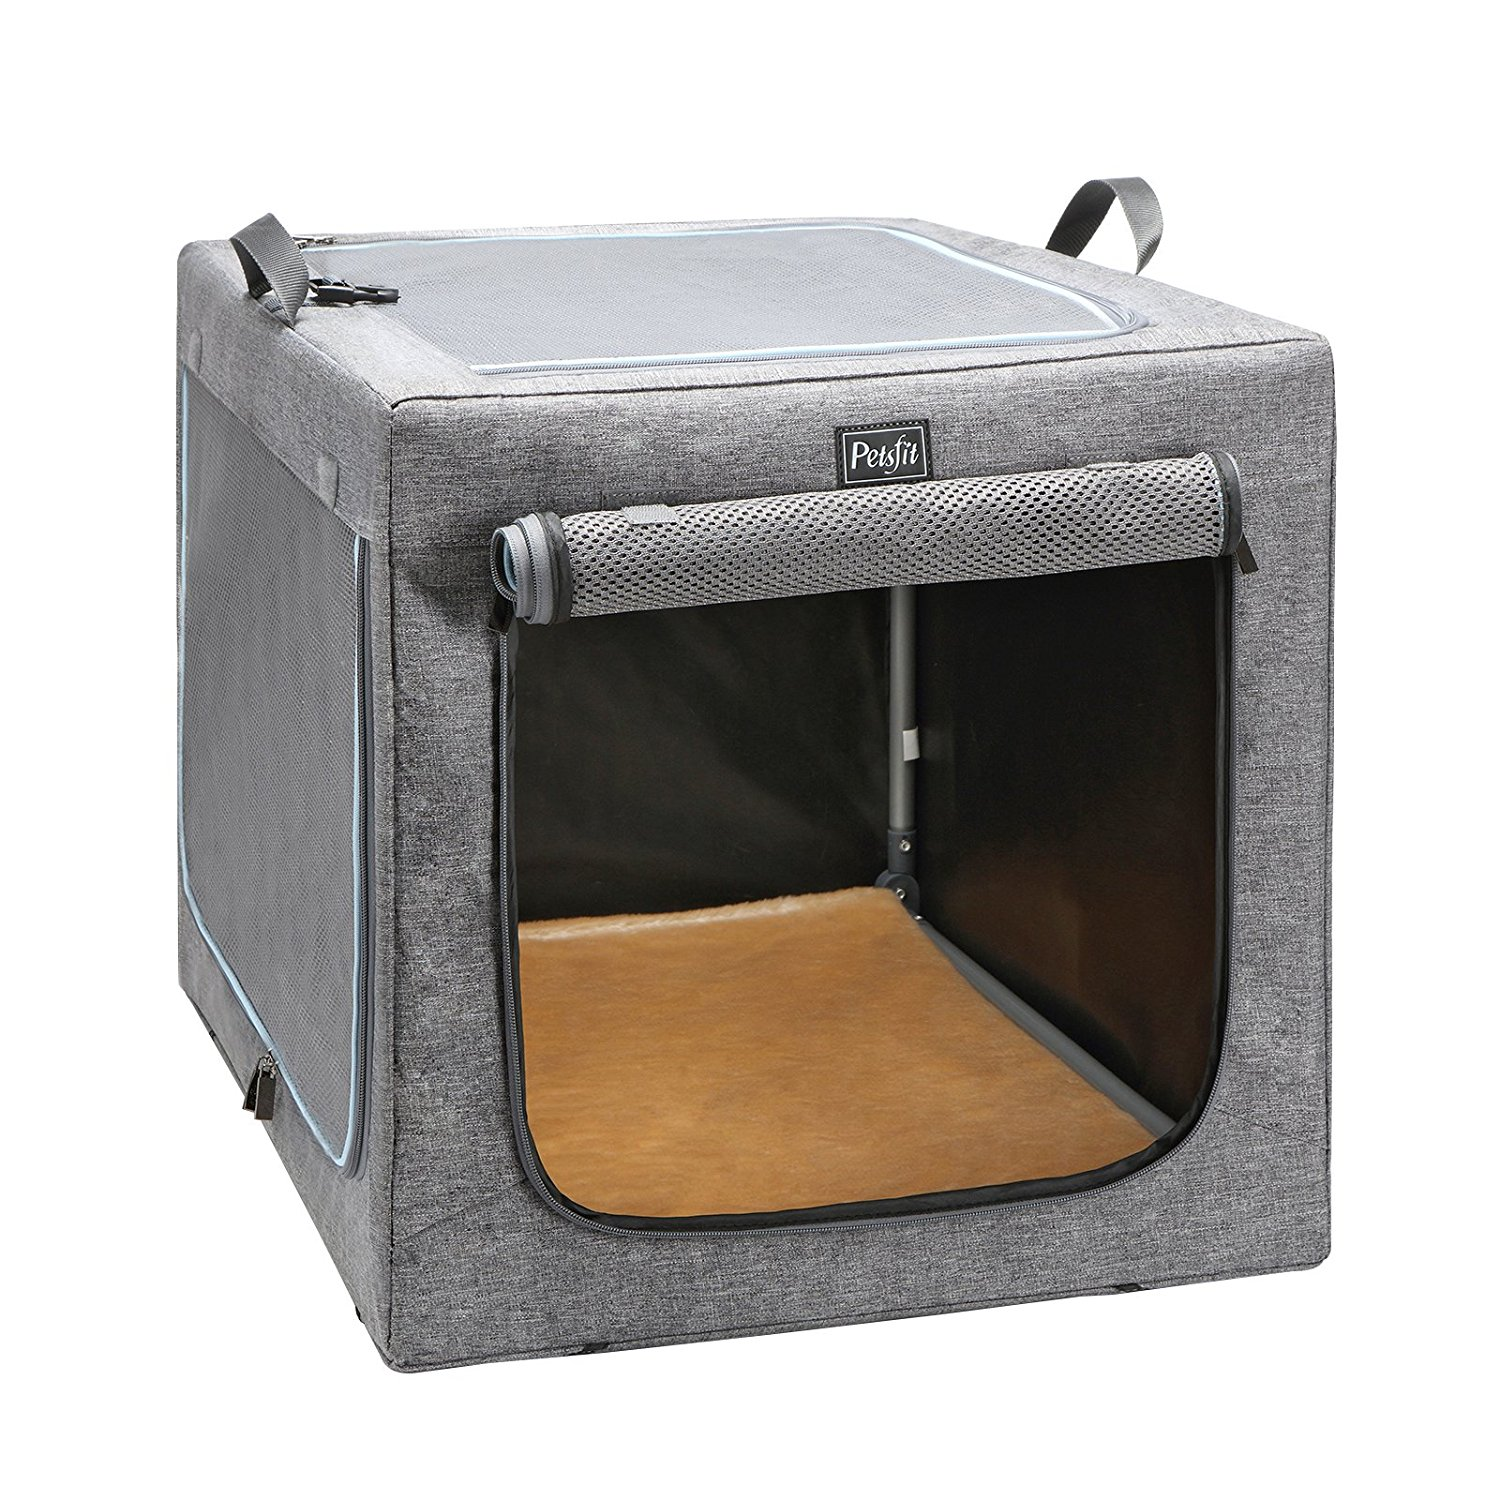 Fantastic Petsfit Soft Portable Dog Kennels Currently Available Dog Kennels Soft Sided Dog Crate Target Soft Sided Dog Crate Large Fable Travel Pet Crate Iseasily One bark post Soft Sided Dog Crate